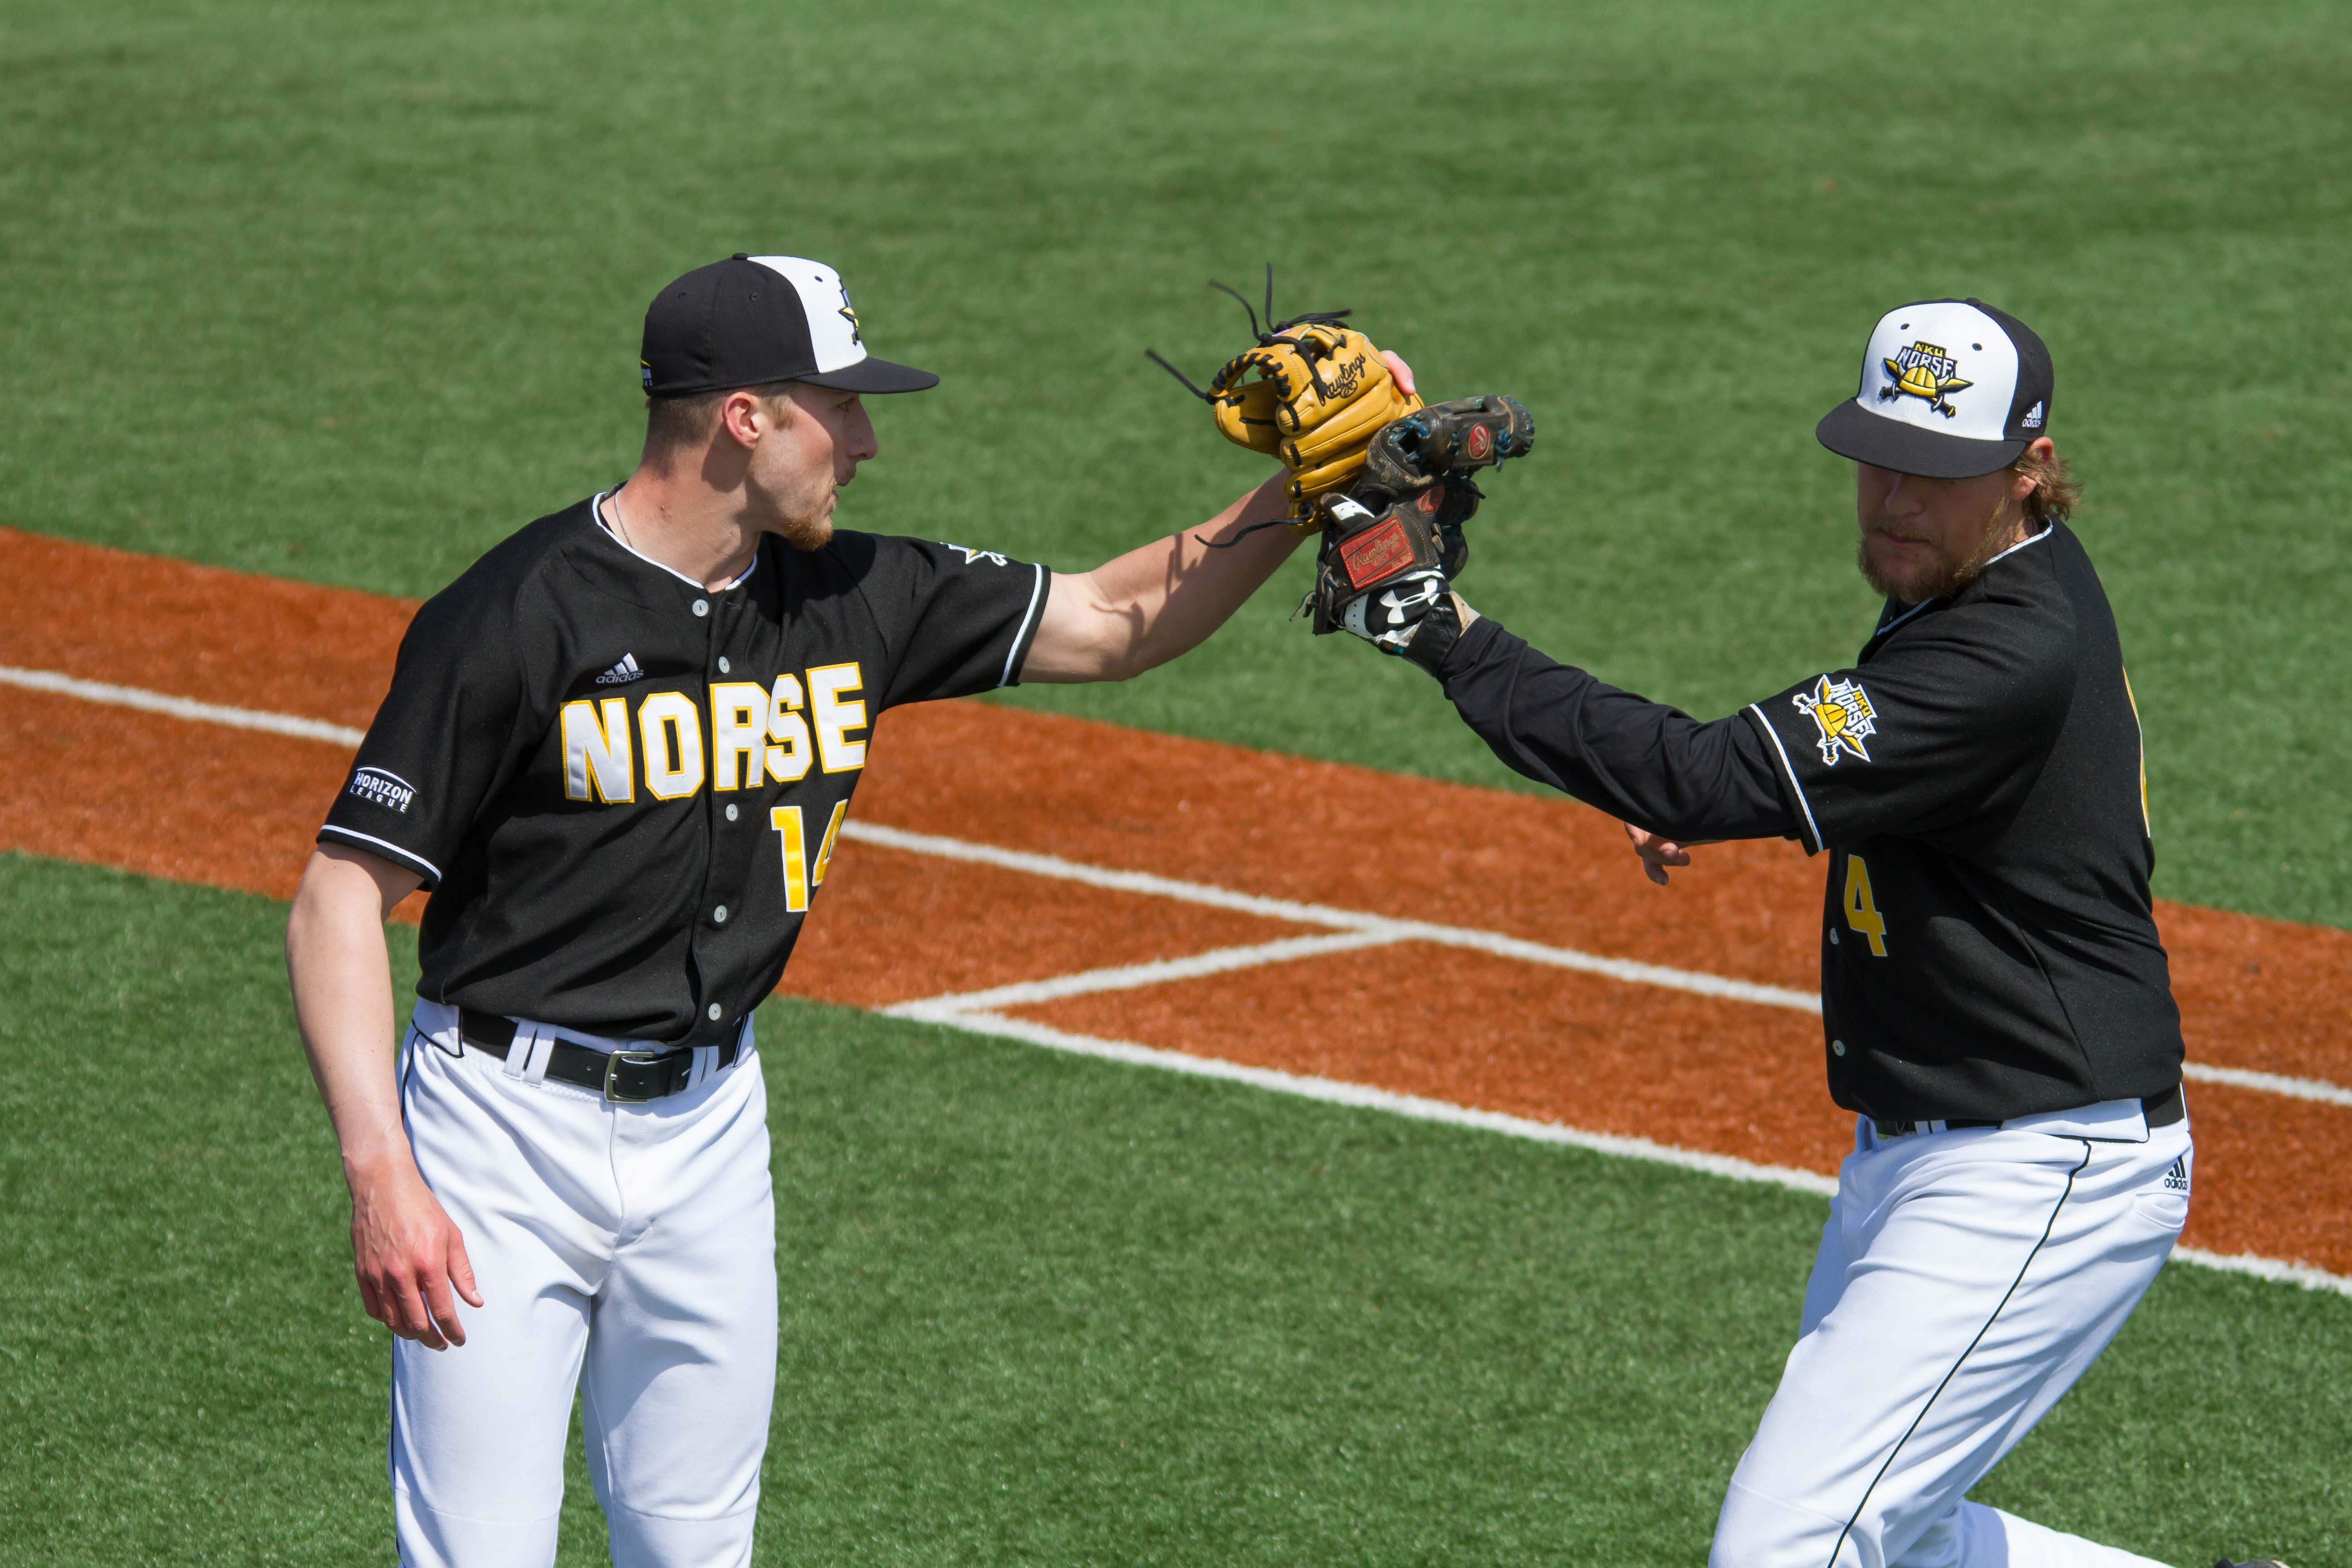 Cameron Ross (14) and Dominic Mercurio (4) slap gloves after an inning. Ross didn't allow a run in 2.2 innings of work